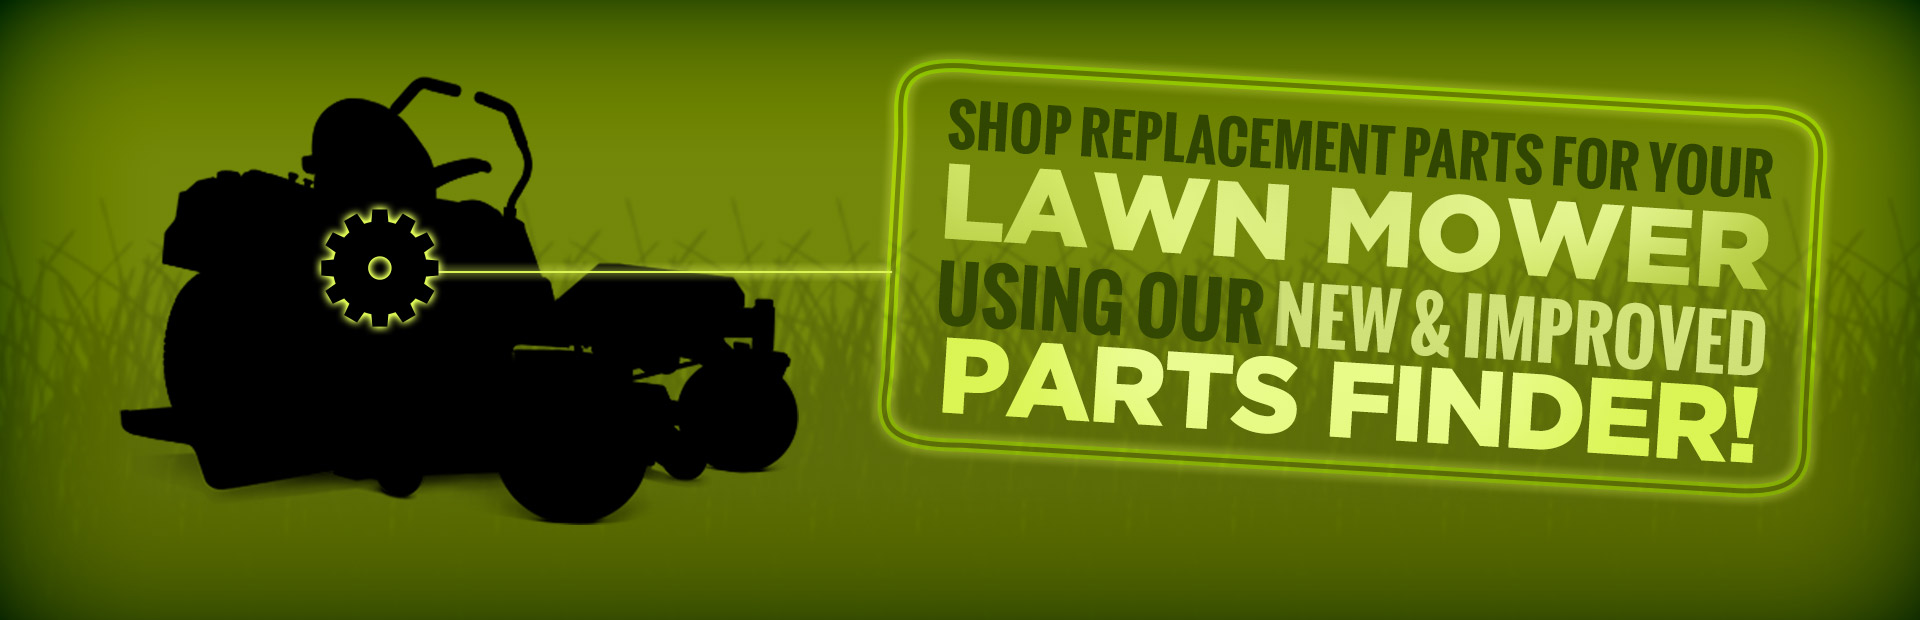 Shop replacement parts for your lawn mower using our new and improved Parts Finder!